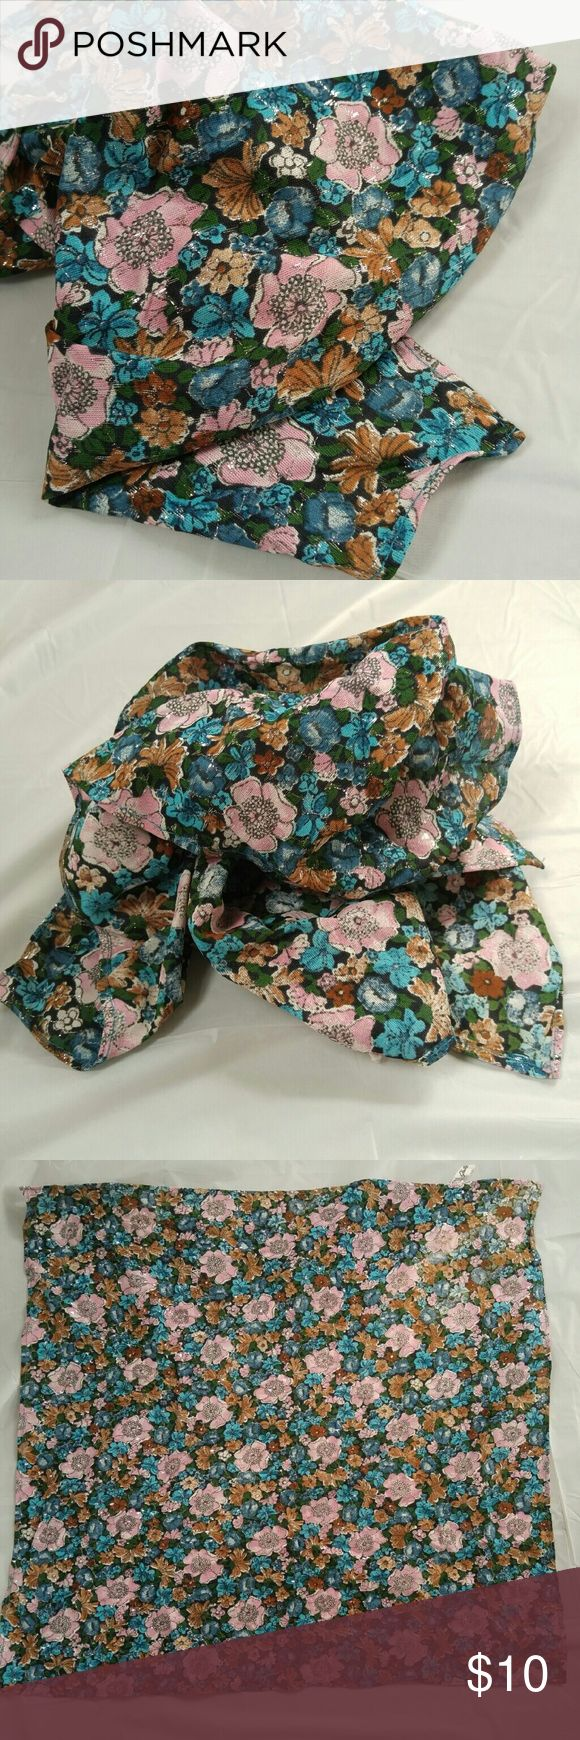 Vintage flower square scarf by Glentex pink silver This feminine scarf has an allover flower print in shades of pink, turquoise, green, brown, and navy blue with metallic silver threads woven throughout in a wavy pattern. The tag reads 80 % acetate  15% nylon 5% metallic by Glentex and care instructions. This scarf is in nice condition I could only find 2 pinholes where a brooch had been fastened, but this is only seen if you hold it up to the light and look up close, can't be seen when…